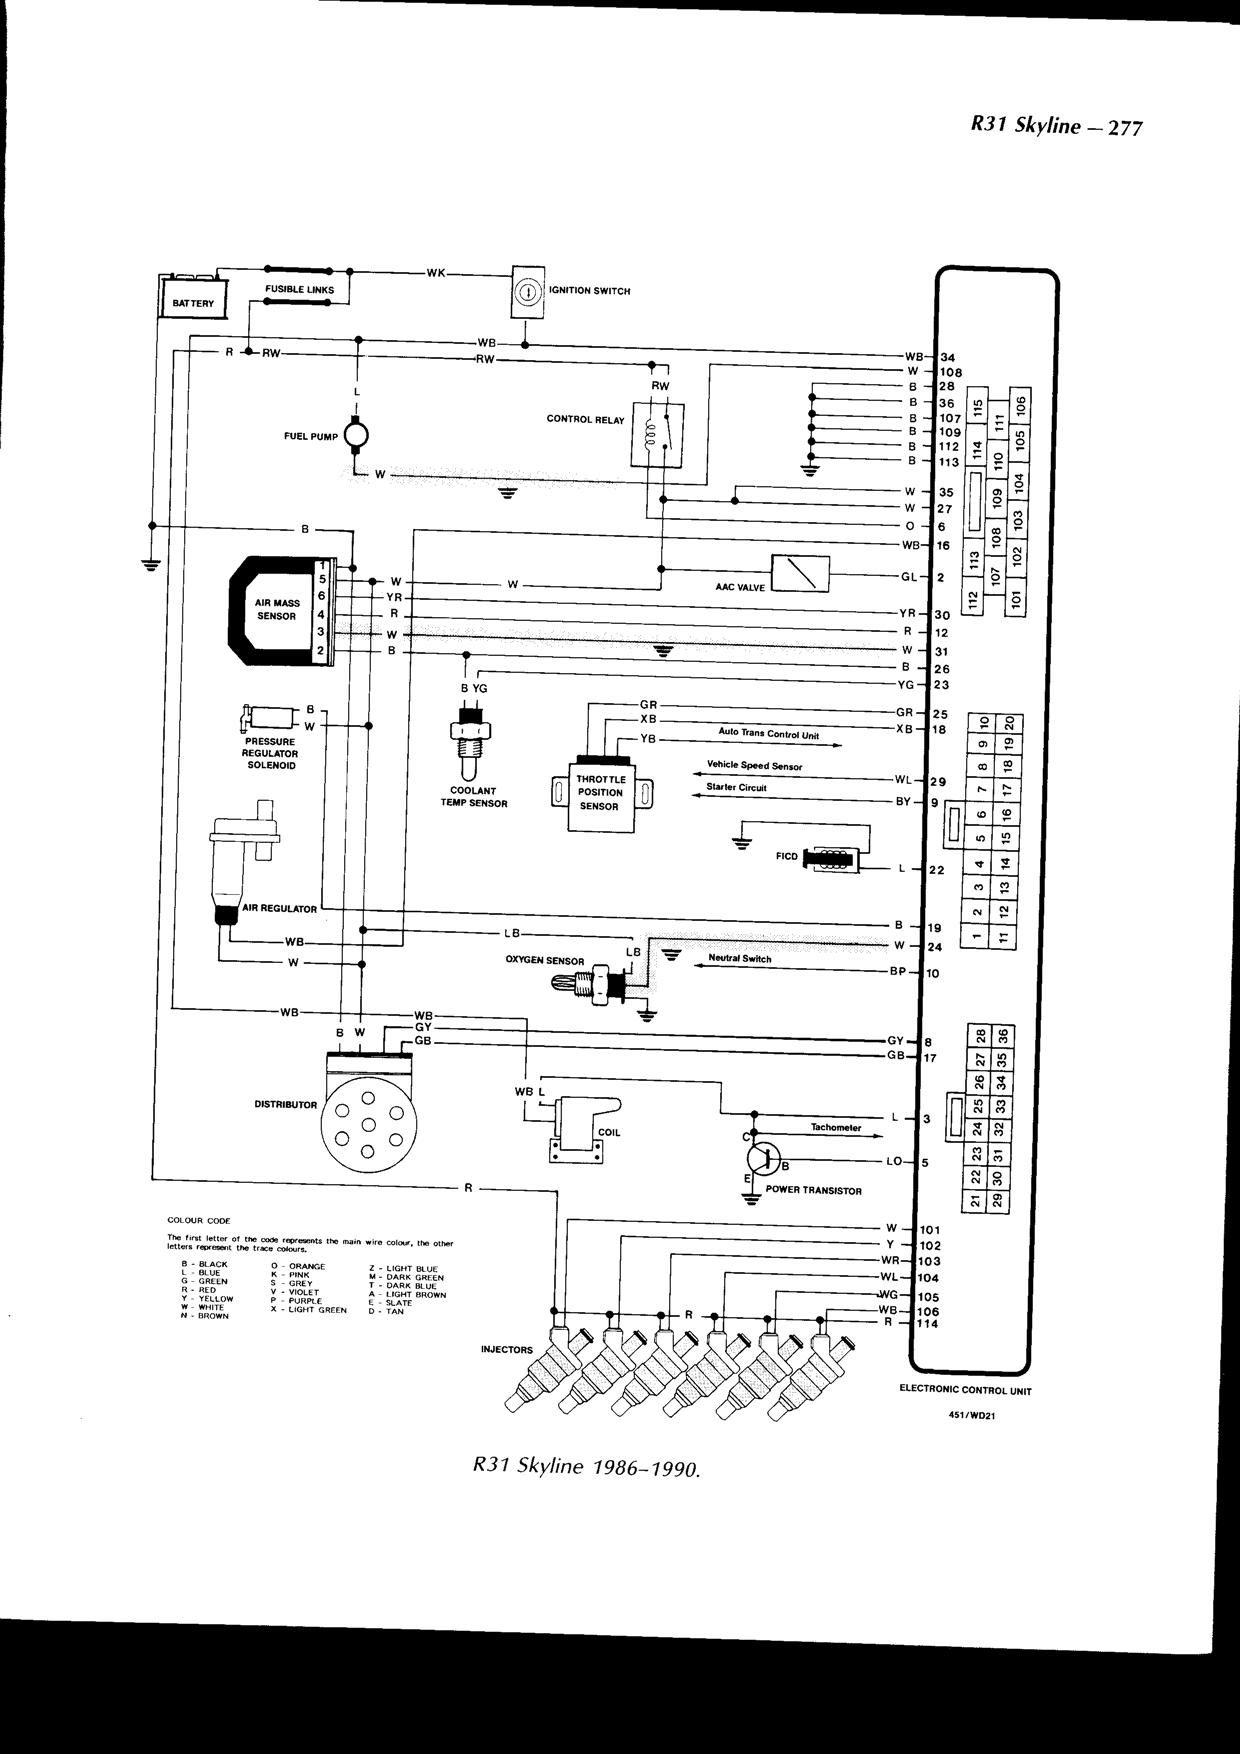 nissan civilian wiring diagram nissan wiring diagrams nissan 1400 electrical wiring diagram